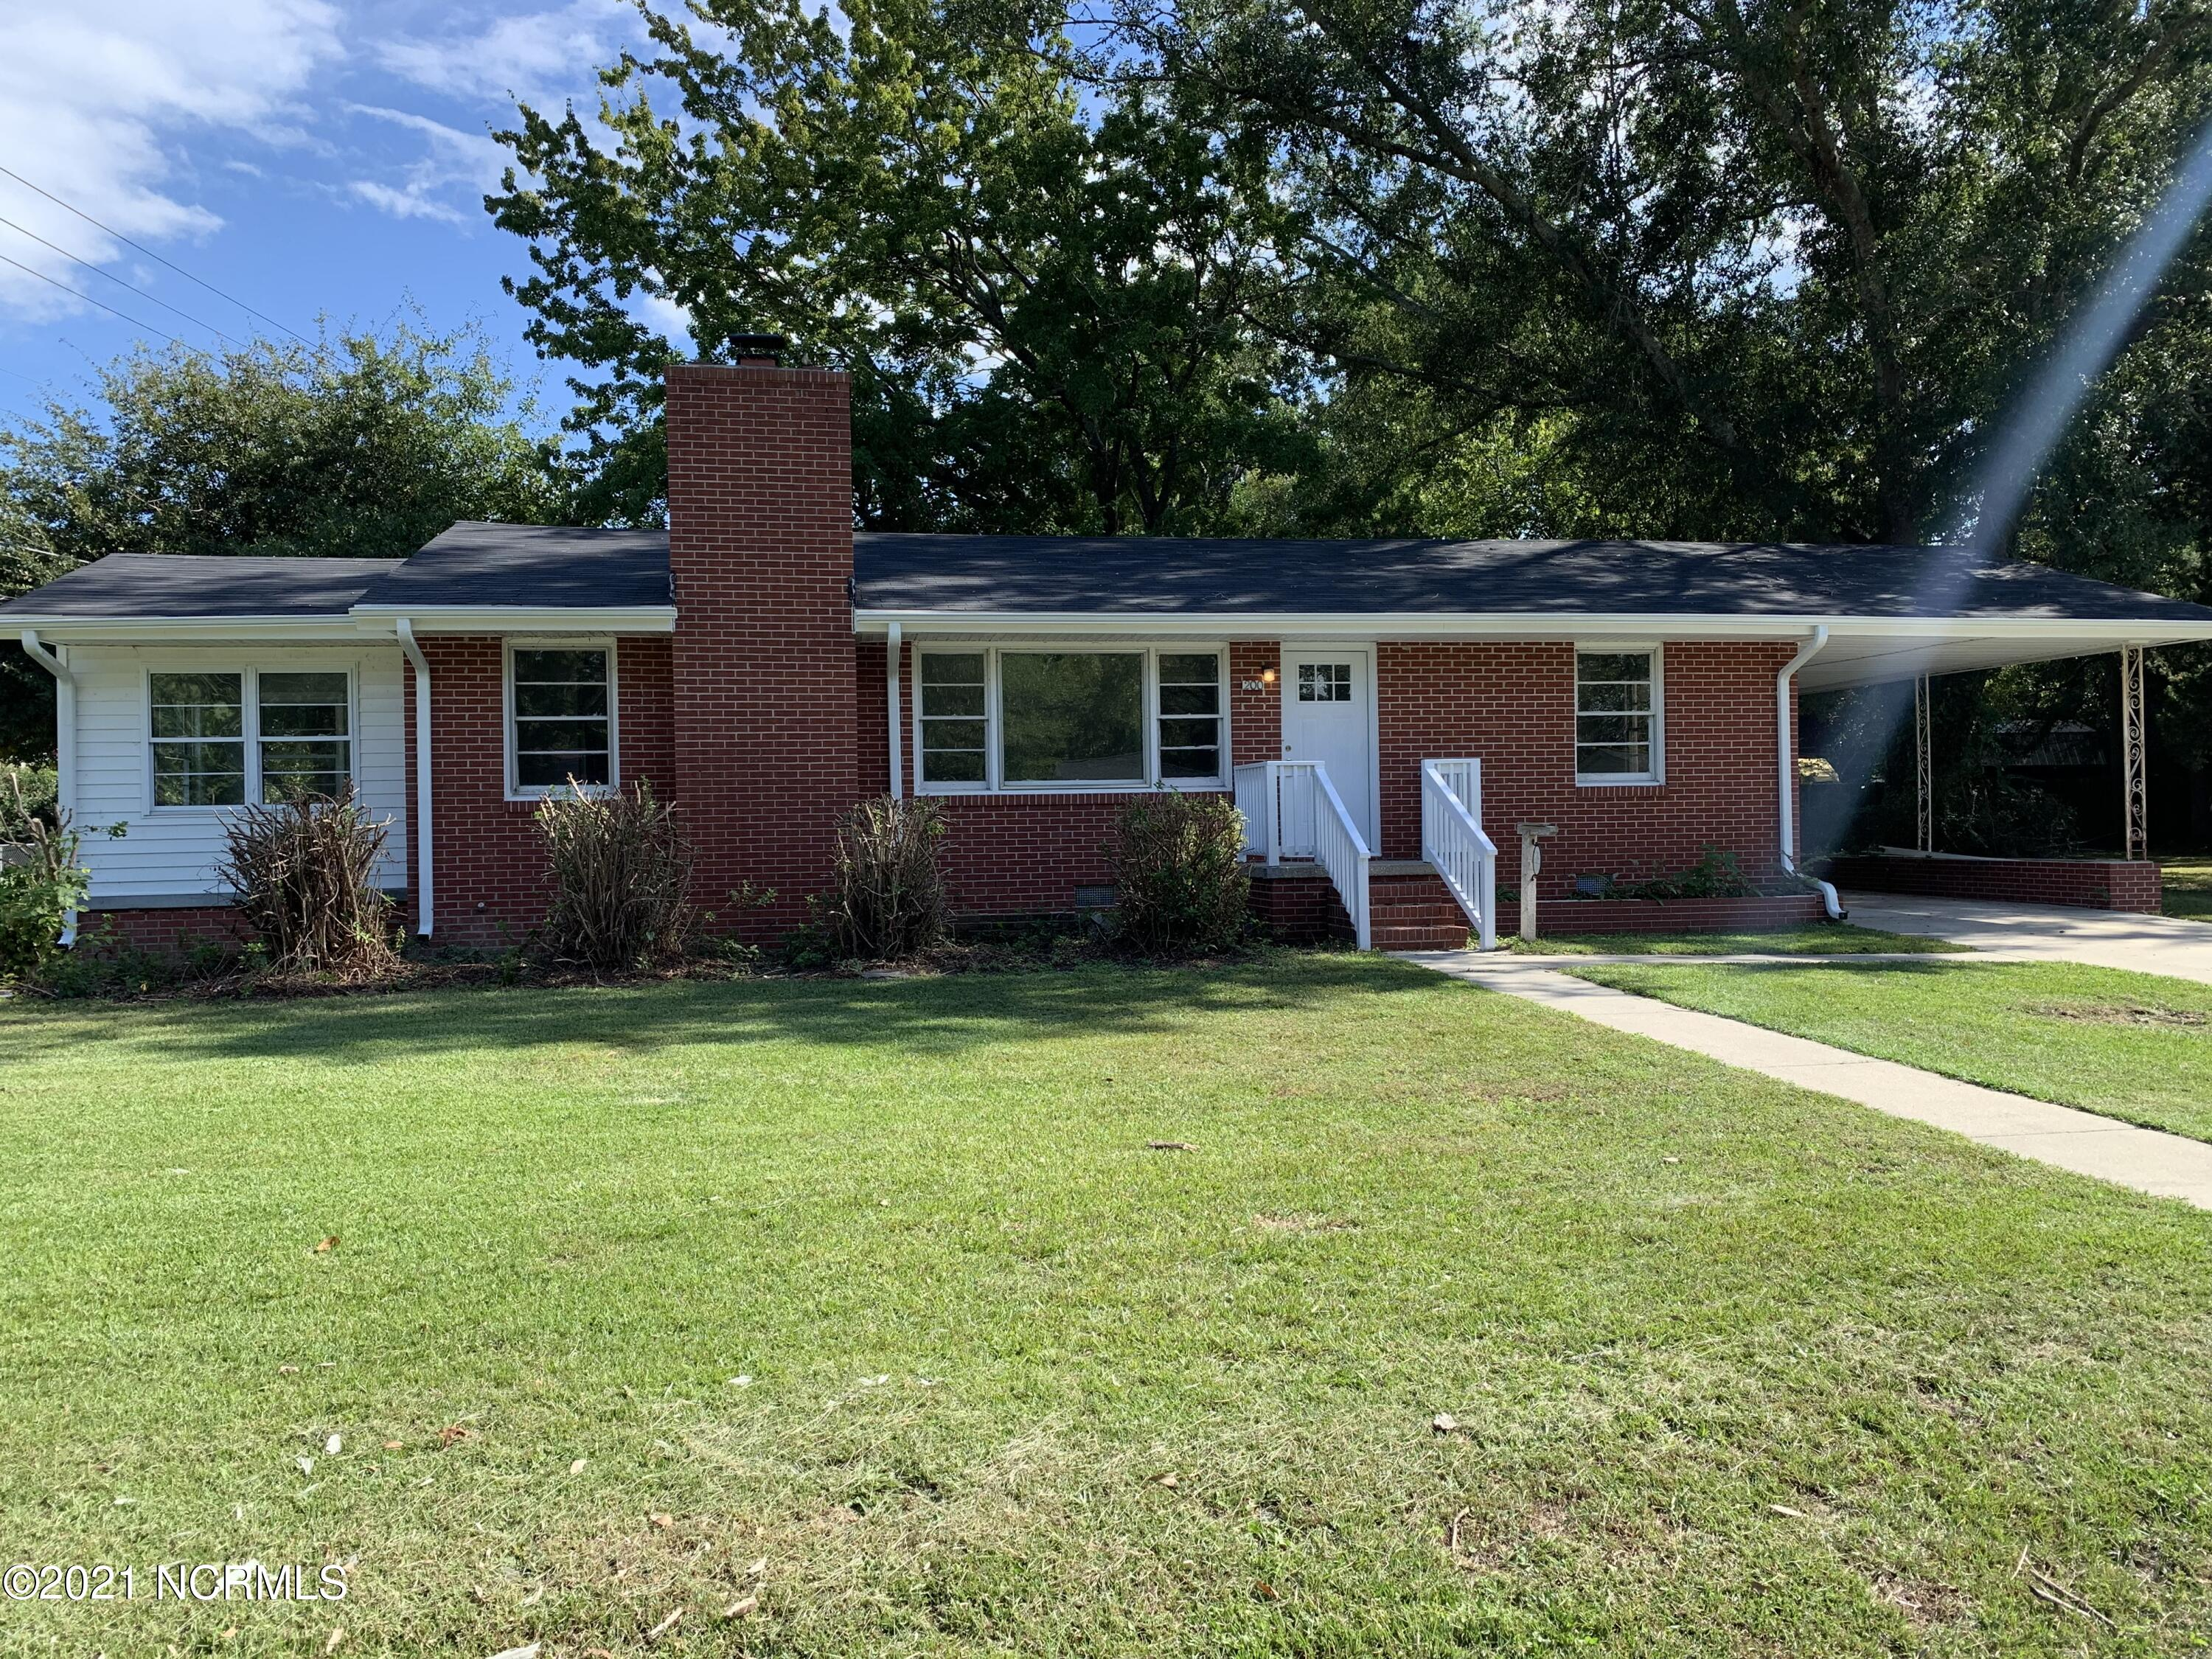 Cute freshly painted 3 bedroom, 1 & 1/2 bath home with car port located in the heart of Jacksonville.  Open floor plan with Living/Dining area has a fireplace for those cold winter nights that opens up to sunroom. Open floor plan with remodeled kitchen with white cabinets, granite countertops and large island. Stainless steel appliances. This home also features LVP flooring throughout the house. New HVAC unit. 1/2 bath and Laundry room has separate entry (for an additional 54 ft not included in total square footage). Shed for extra storage.  Conveniently located close to shopping, restaurants.